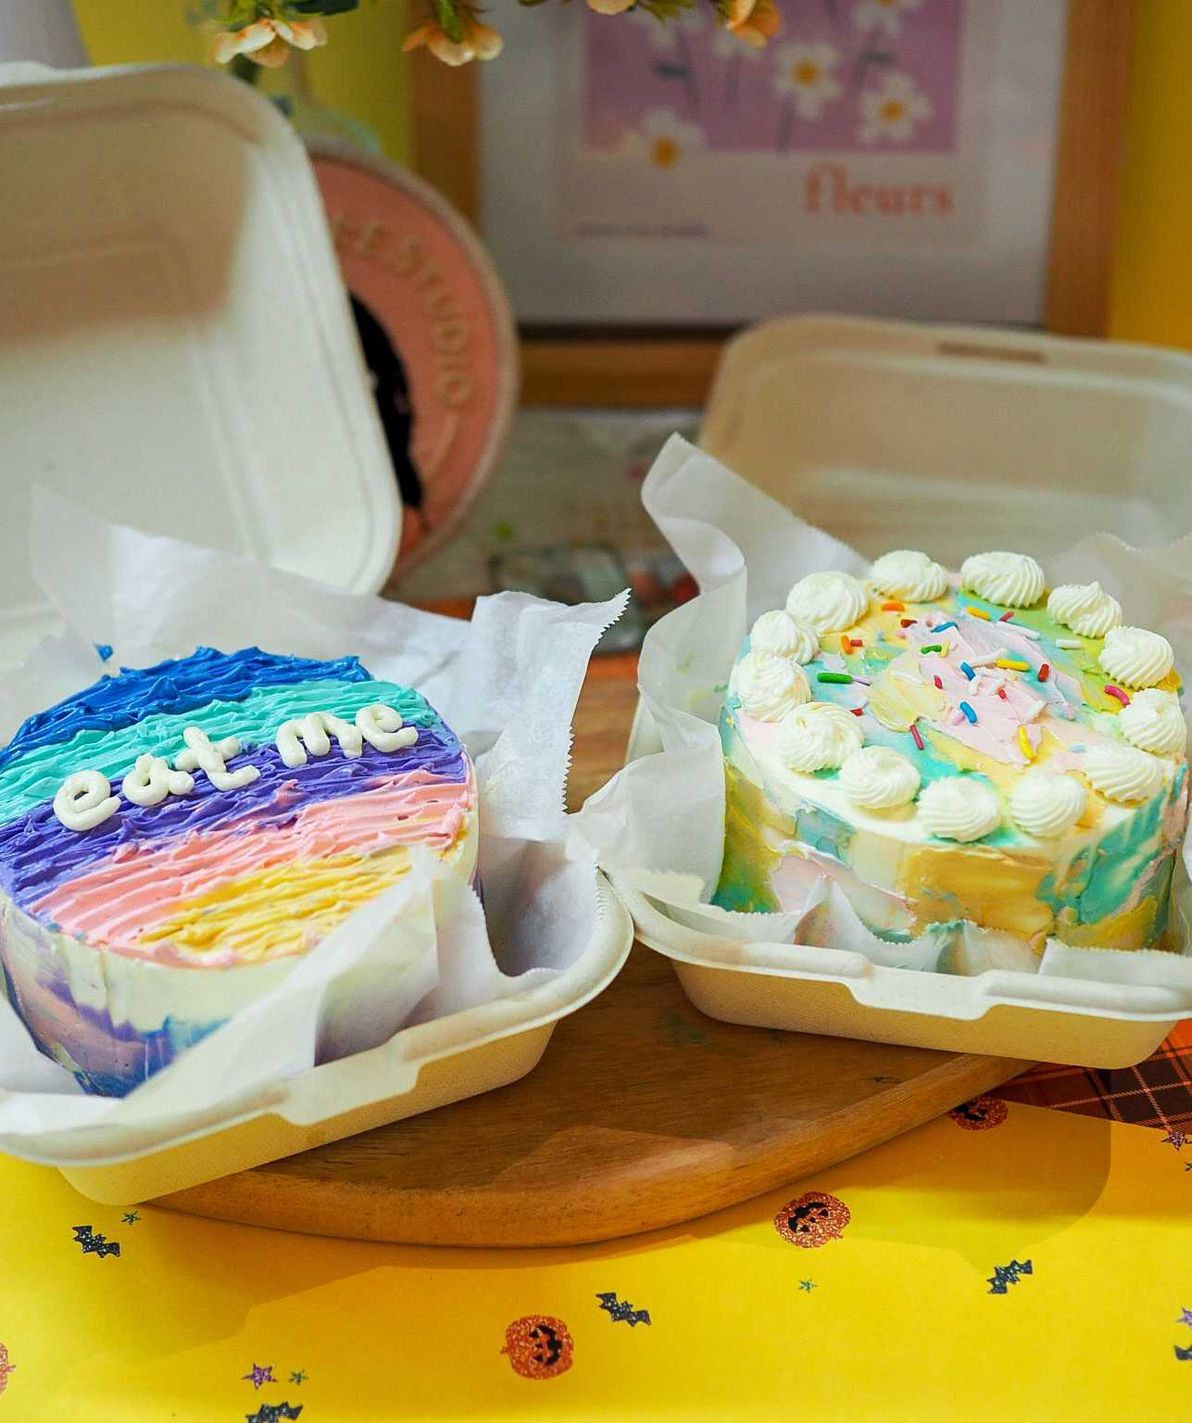 Galore Bake Studio: Decorate Your Very Own Bento Box Cake at This Cute Workshop in Singapore